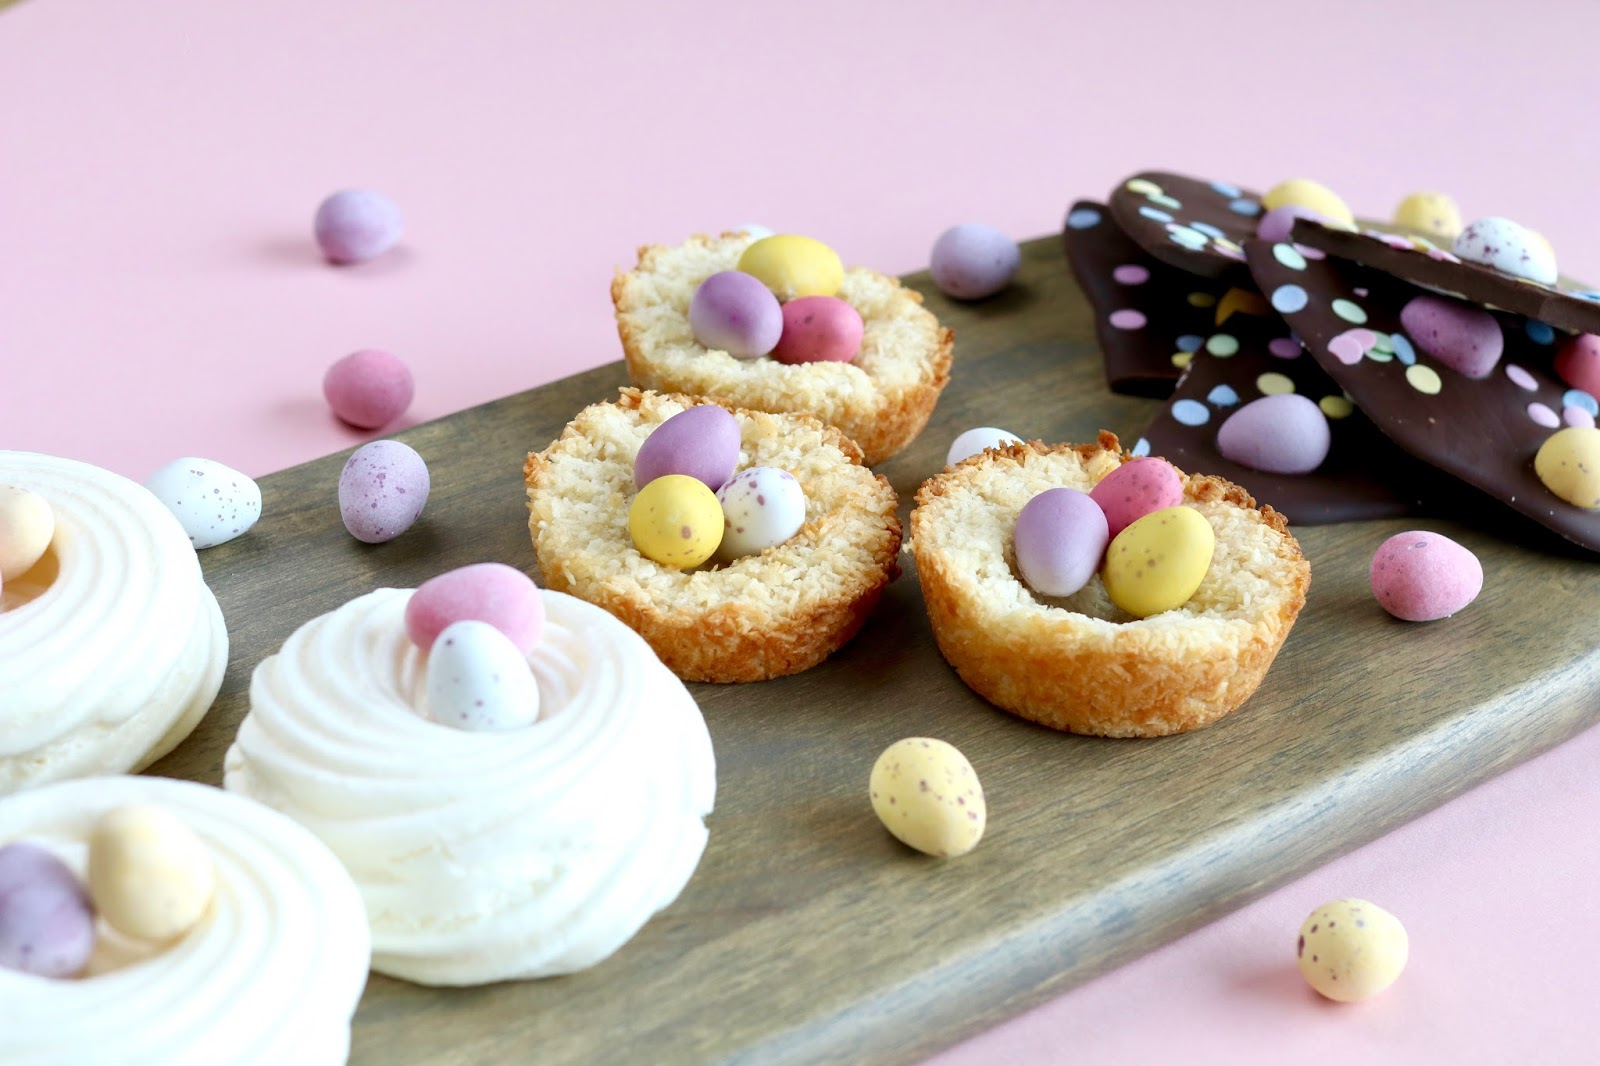 Easter treats coconut macaroons meringue nests chocolate bark with mini eggs